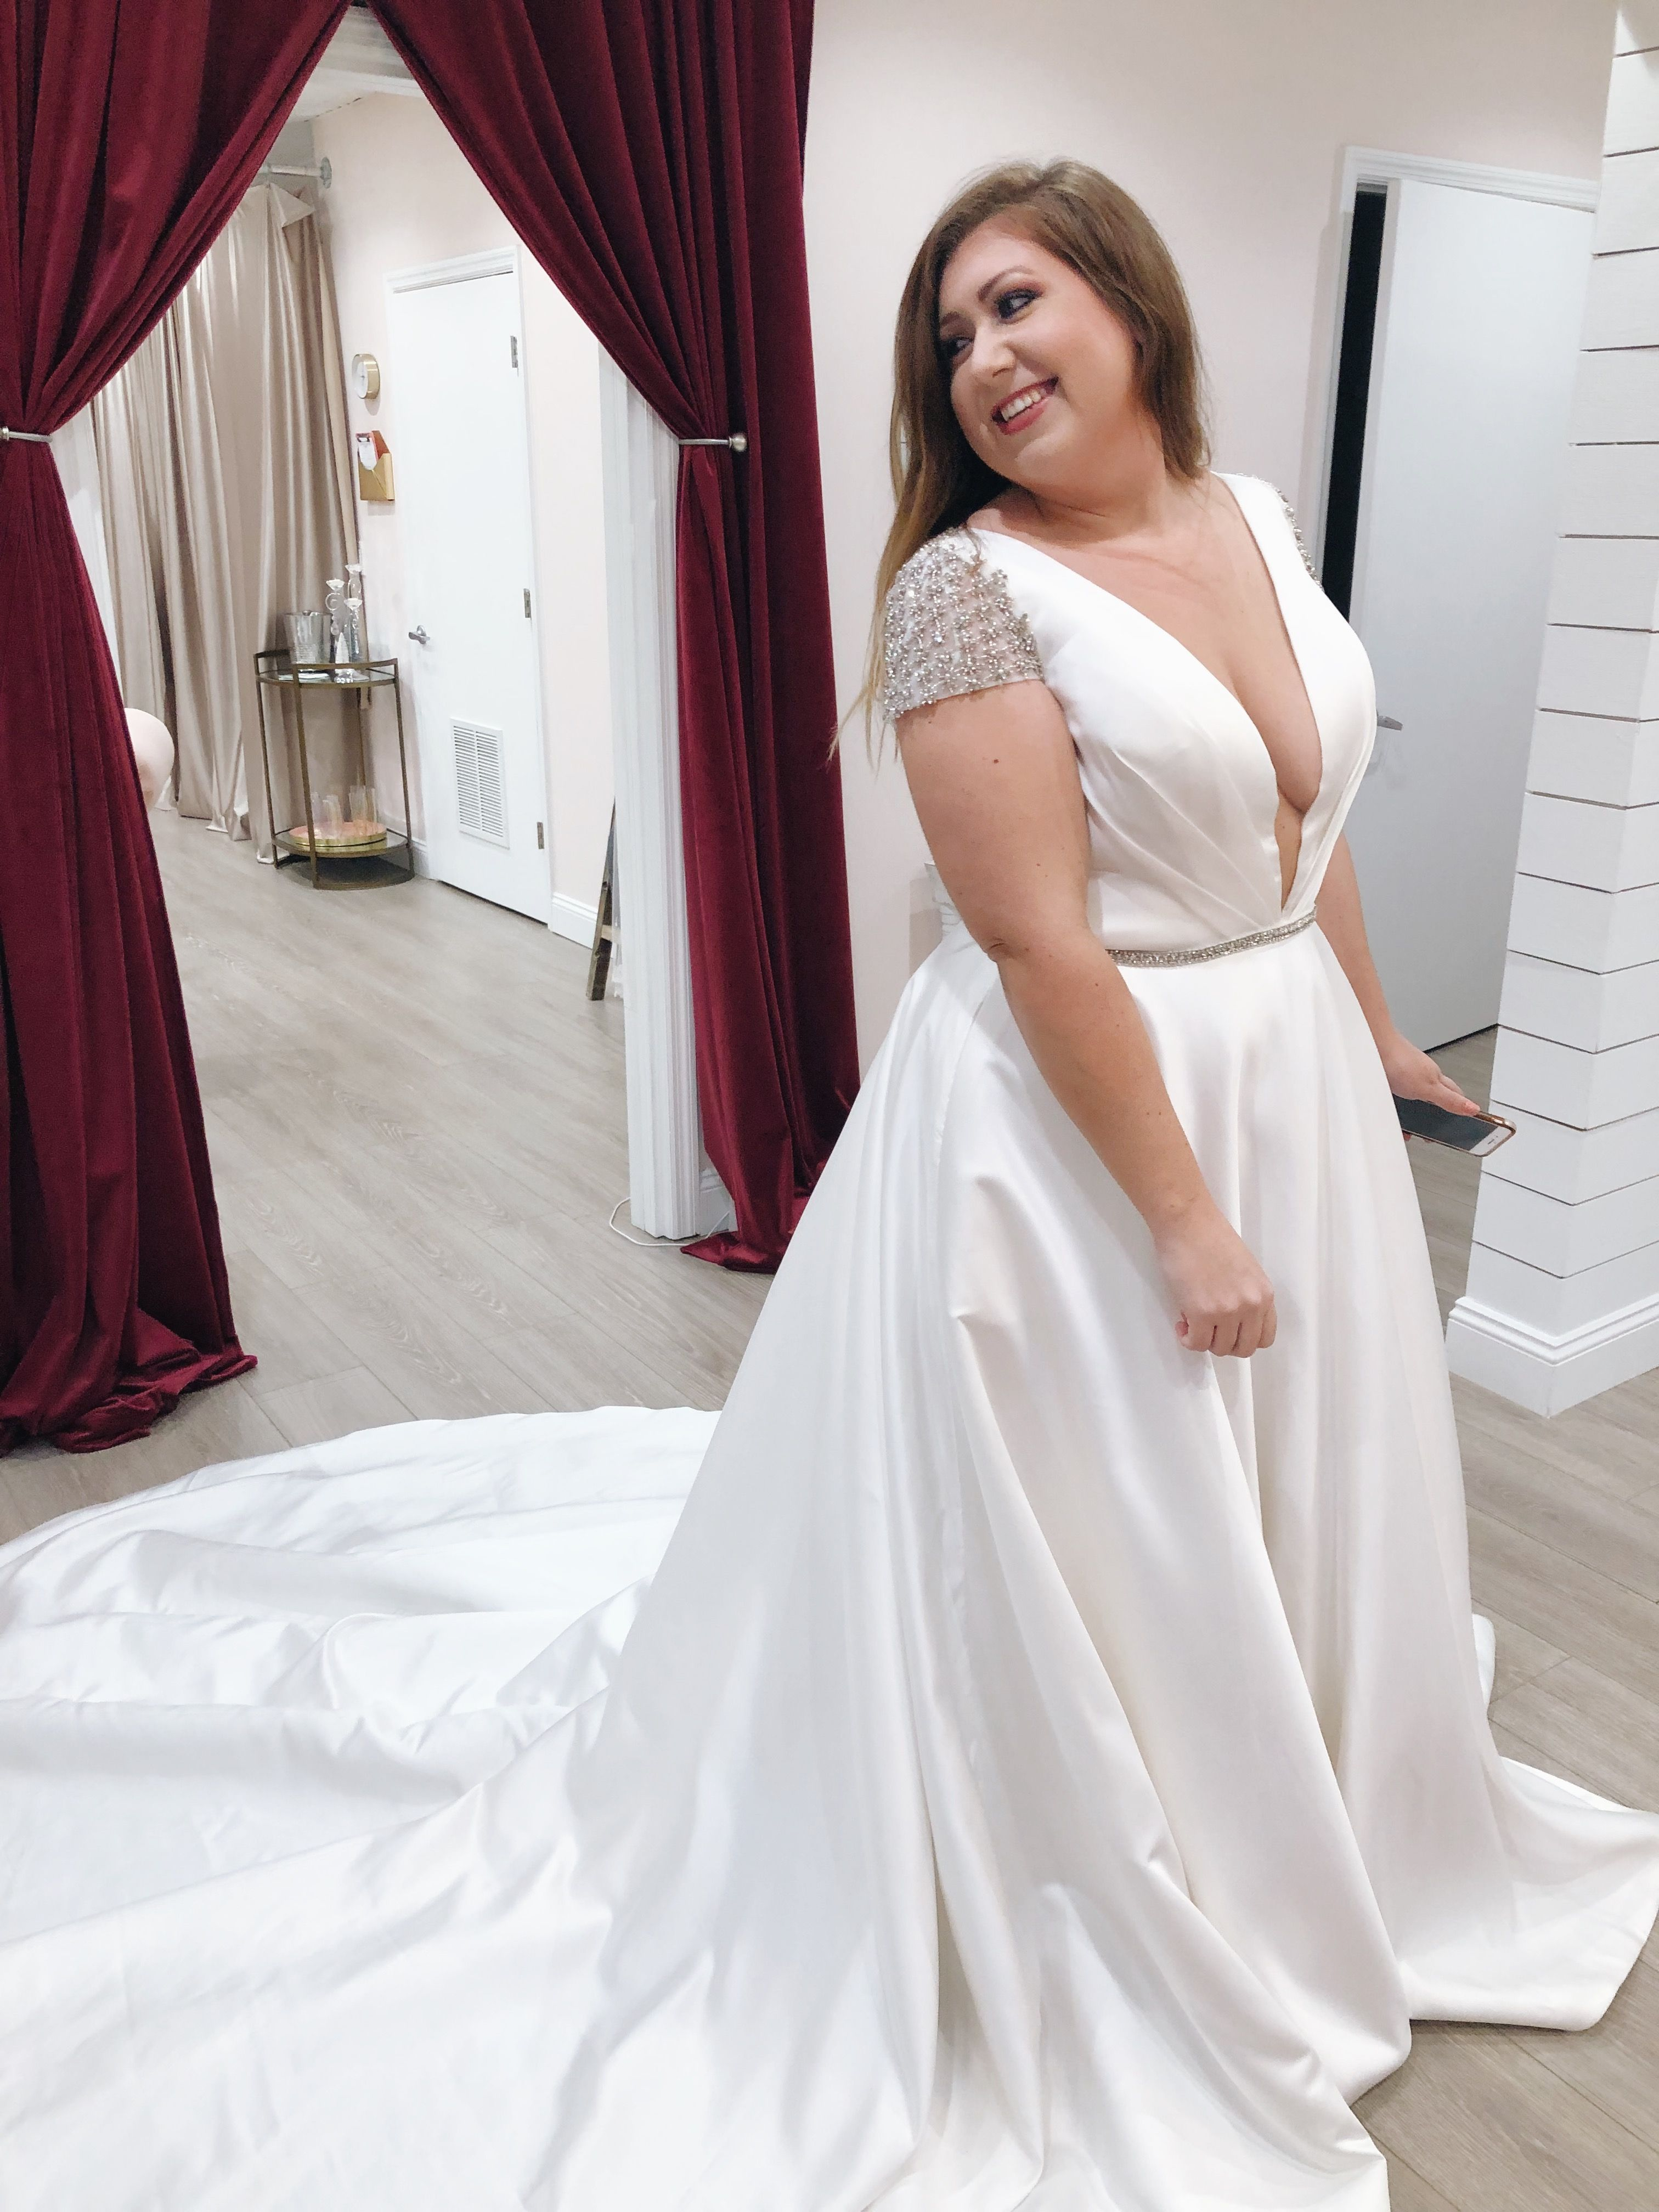 Happy Bride In A Breathtaking Plus Size Gown With Plunging Neckline Make An Appointment At Fernandina Plunging Neckline Wedding Dress Plus Size Gowns Dresses [ 4032 x 3024 Pixel ]